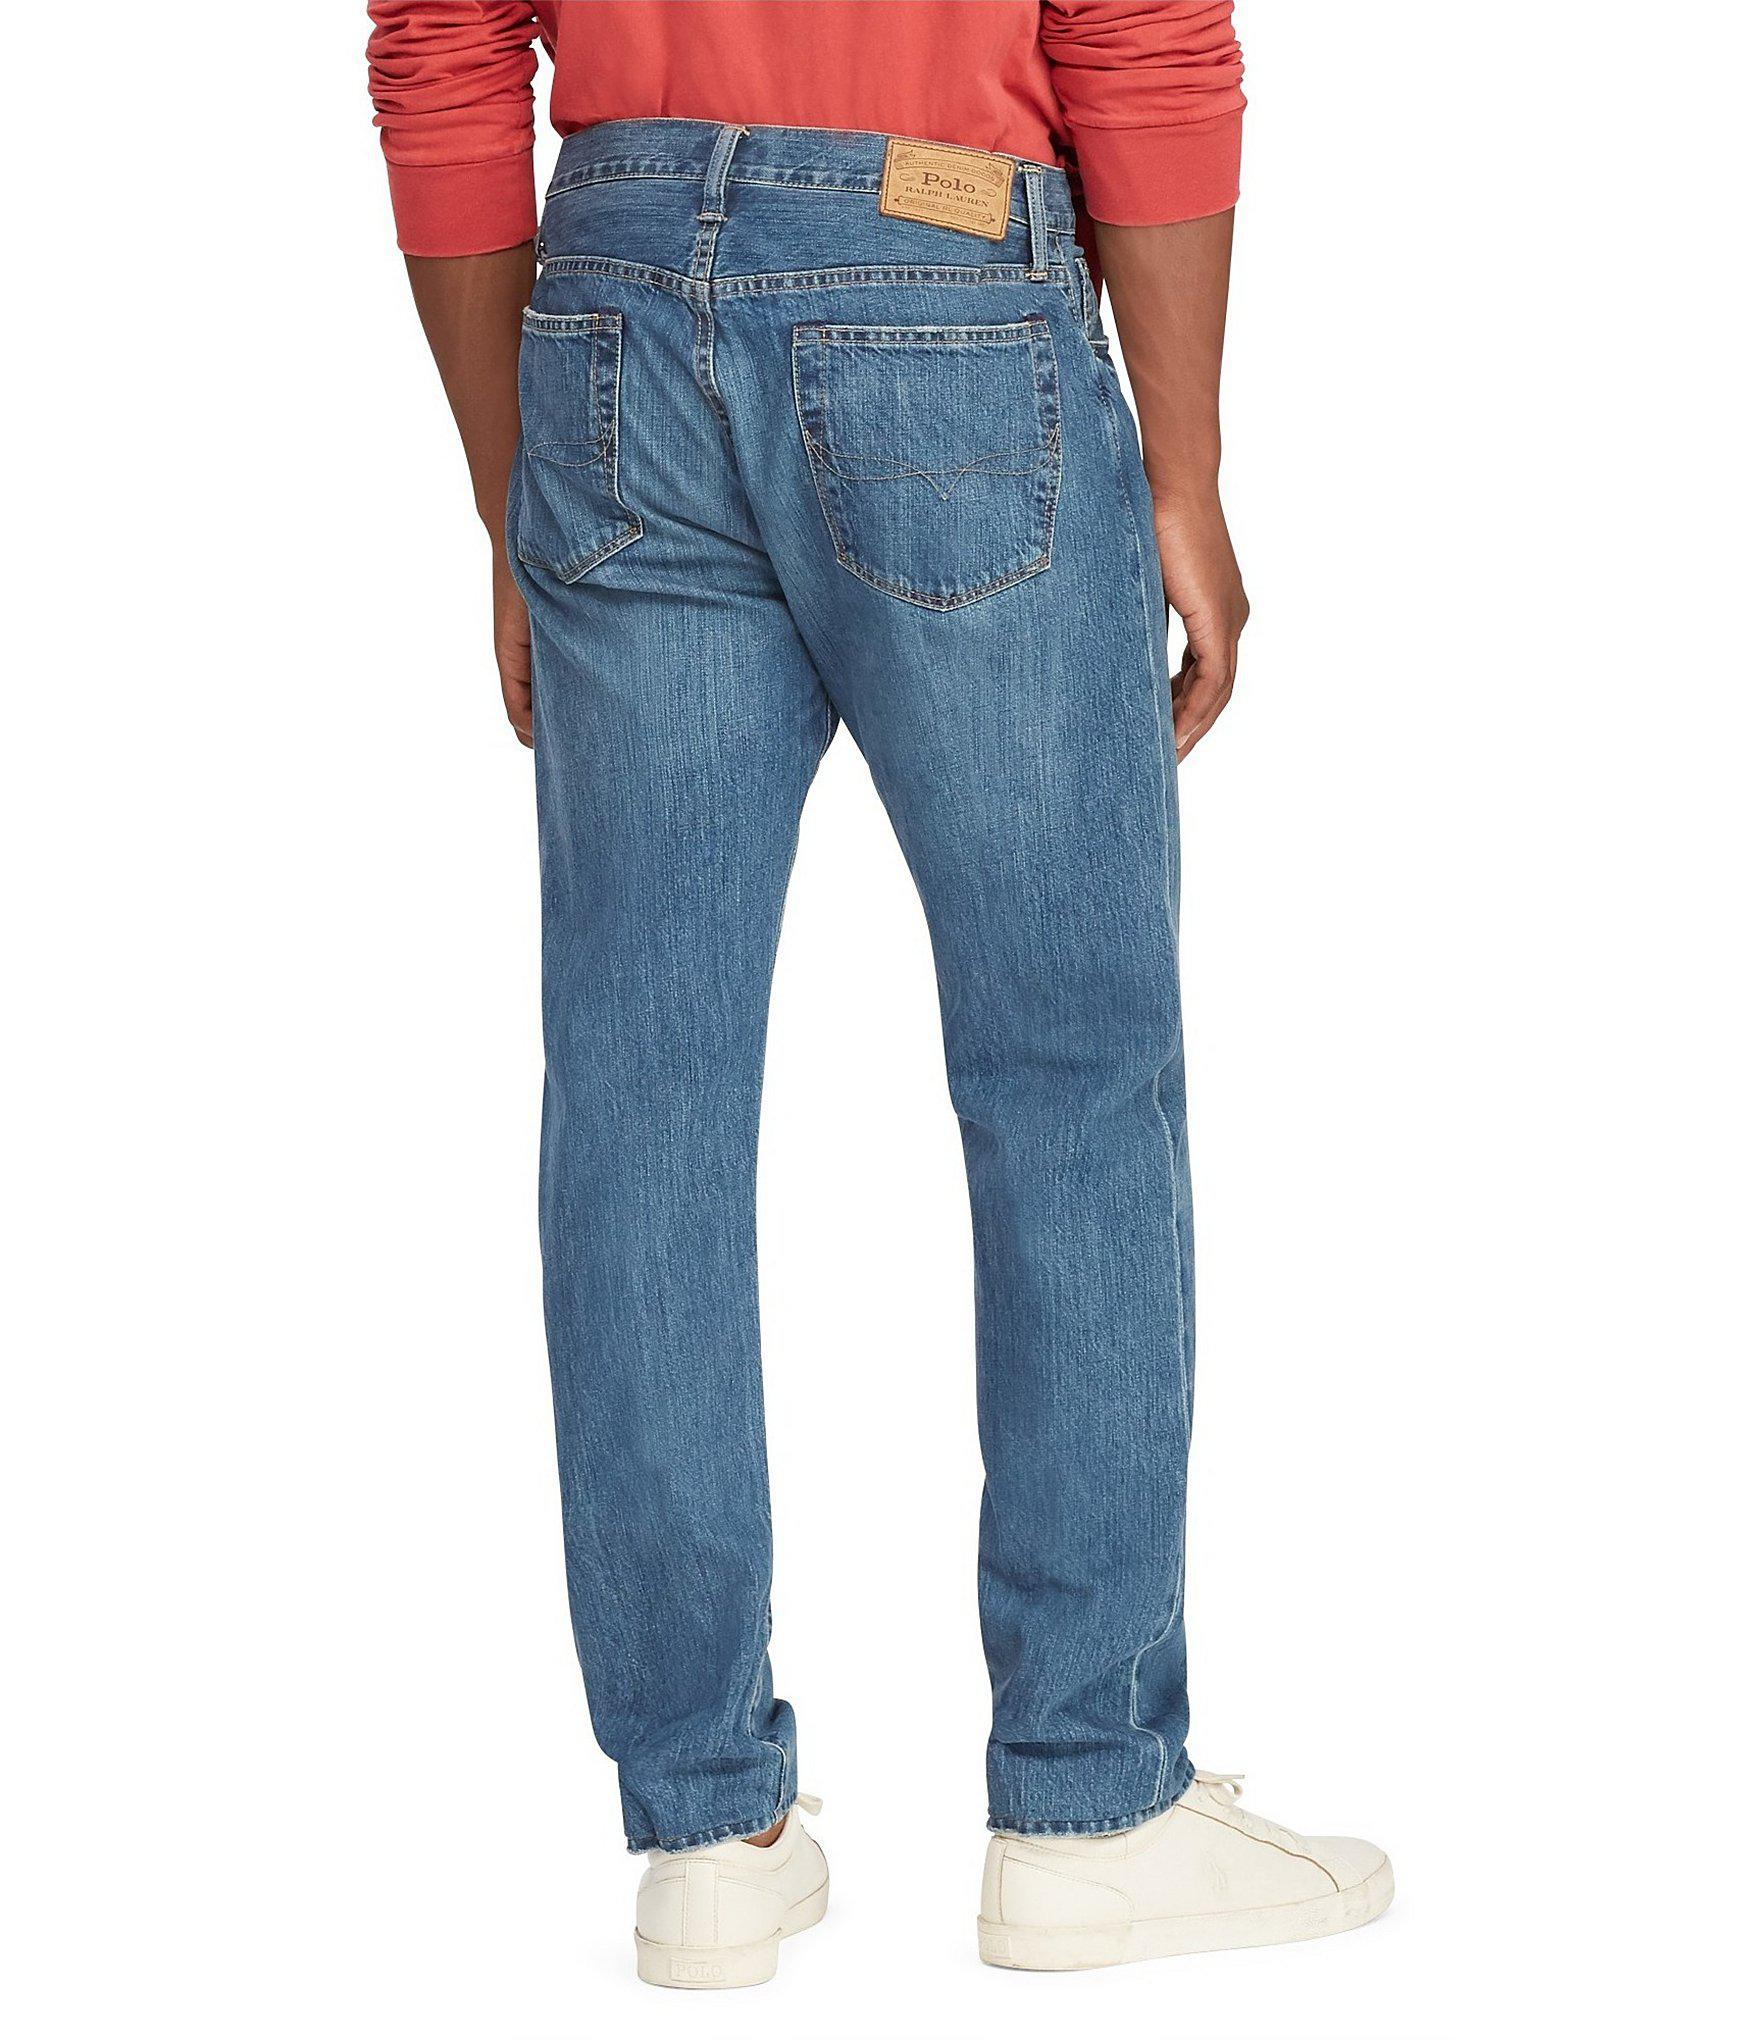 845835338 Lyst - Polo Ralph Lauren Thompson Relaxed-fit Jeans in Blue for Men